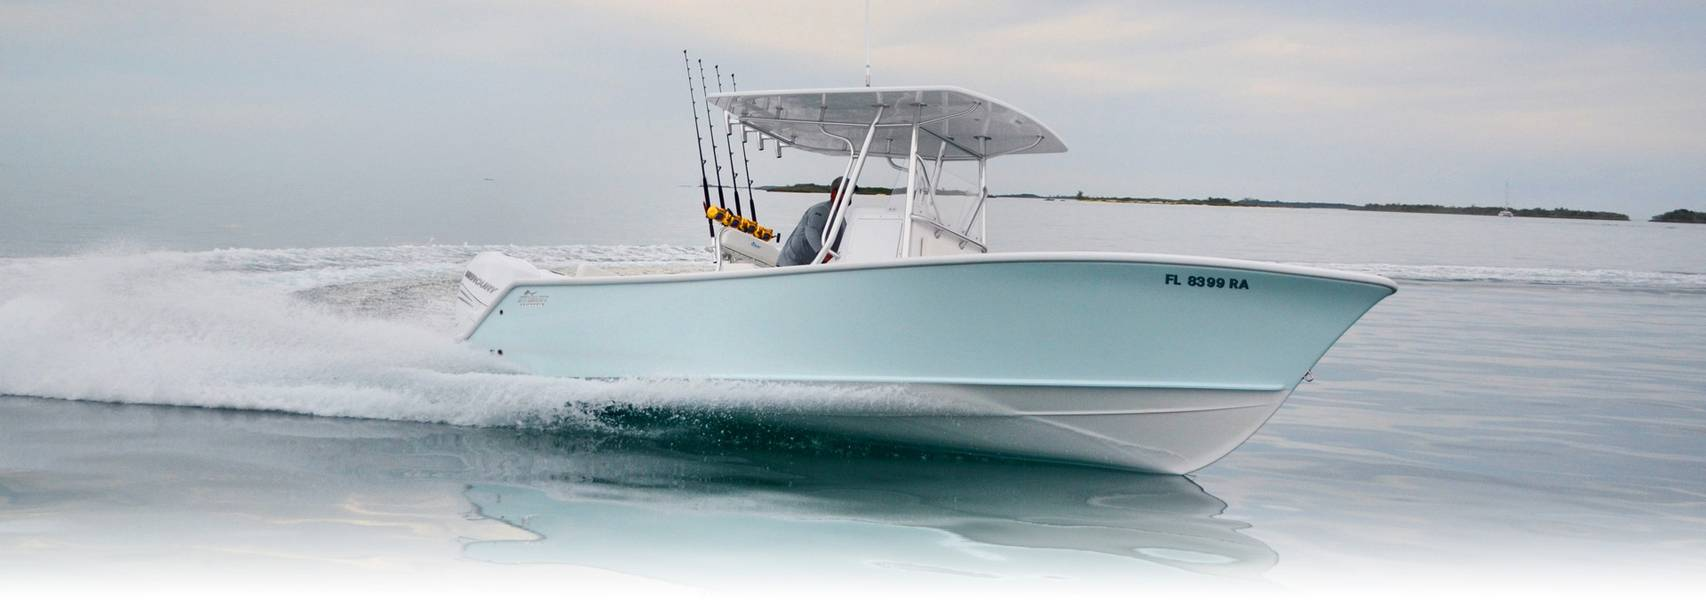 Die Stuart Boatworks 27 war ein Gamechanger für Ocean5, der dieses Jahr zum ersten Mal auf der Miami International Boat Show gezeigt wurde. Bild Courtesy Ocean 5 Naval Architects.